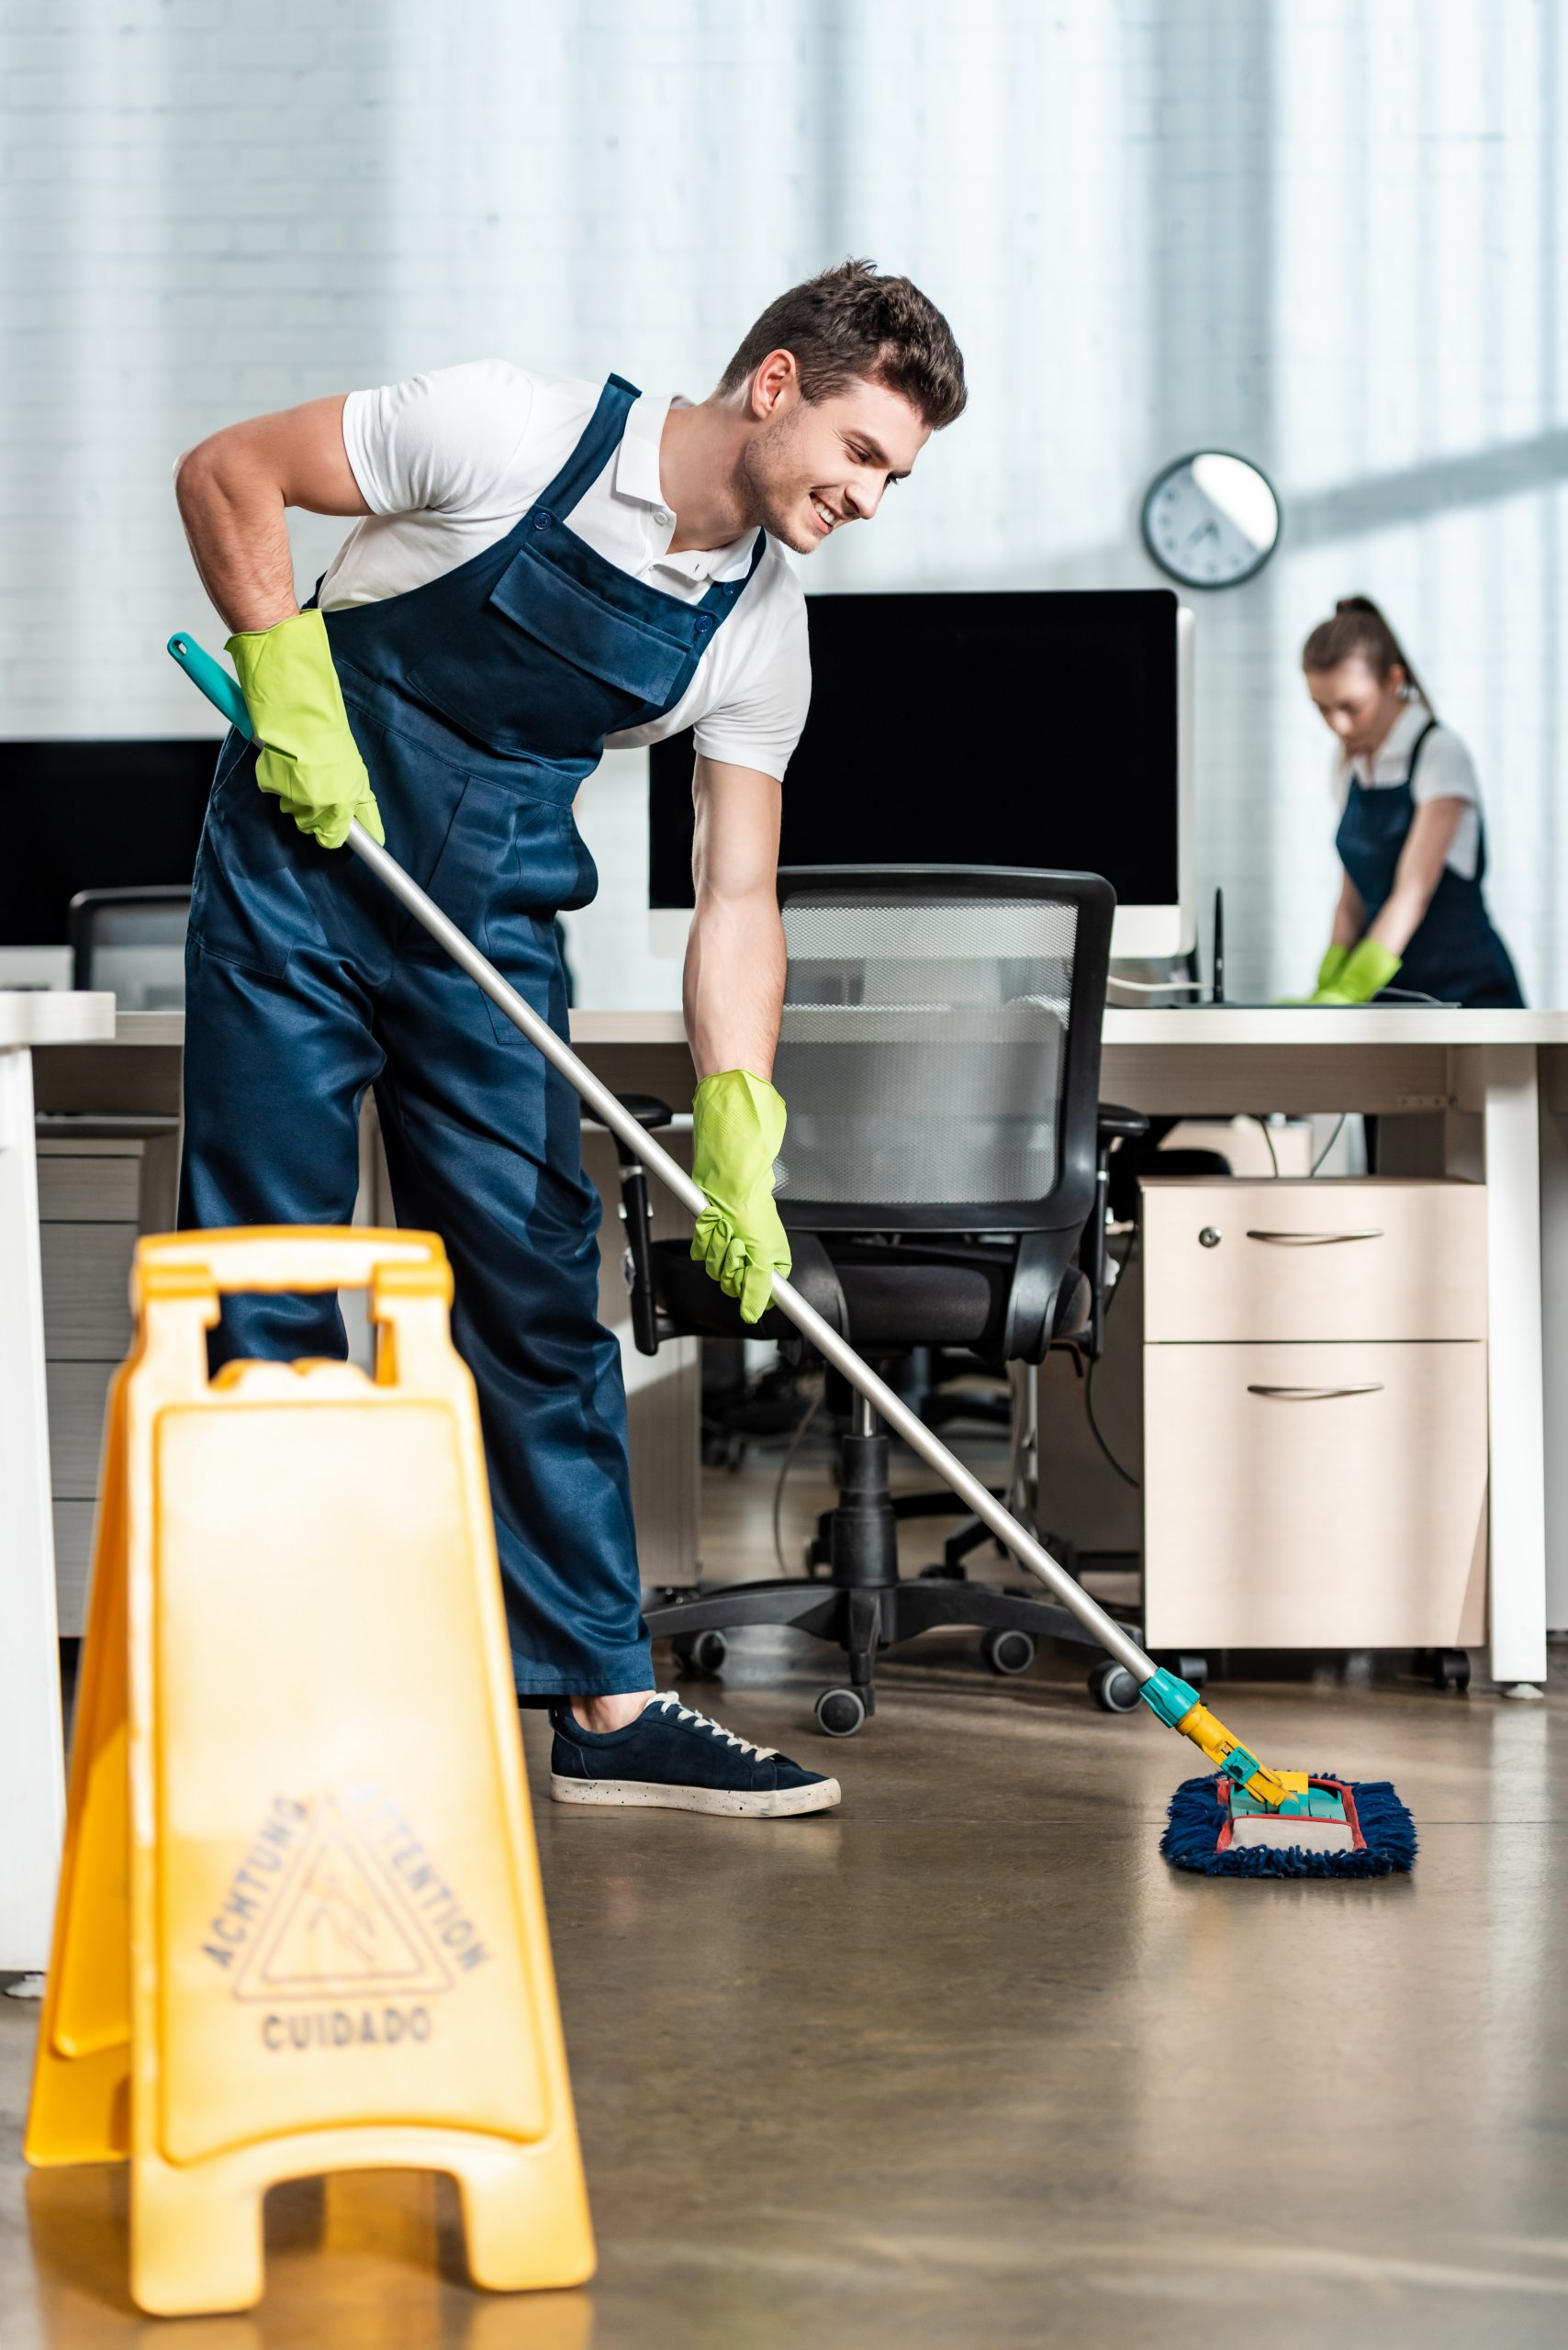 Cleaning Services in Dundalk, MD